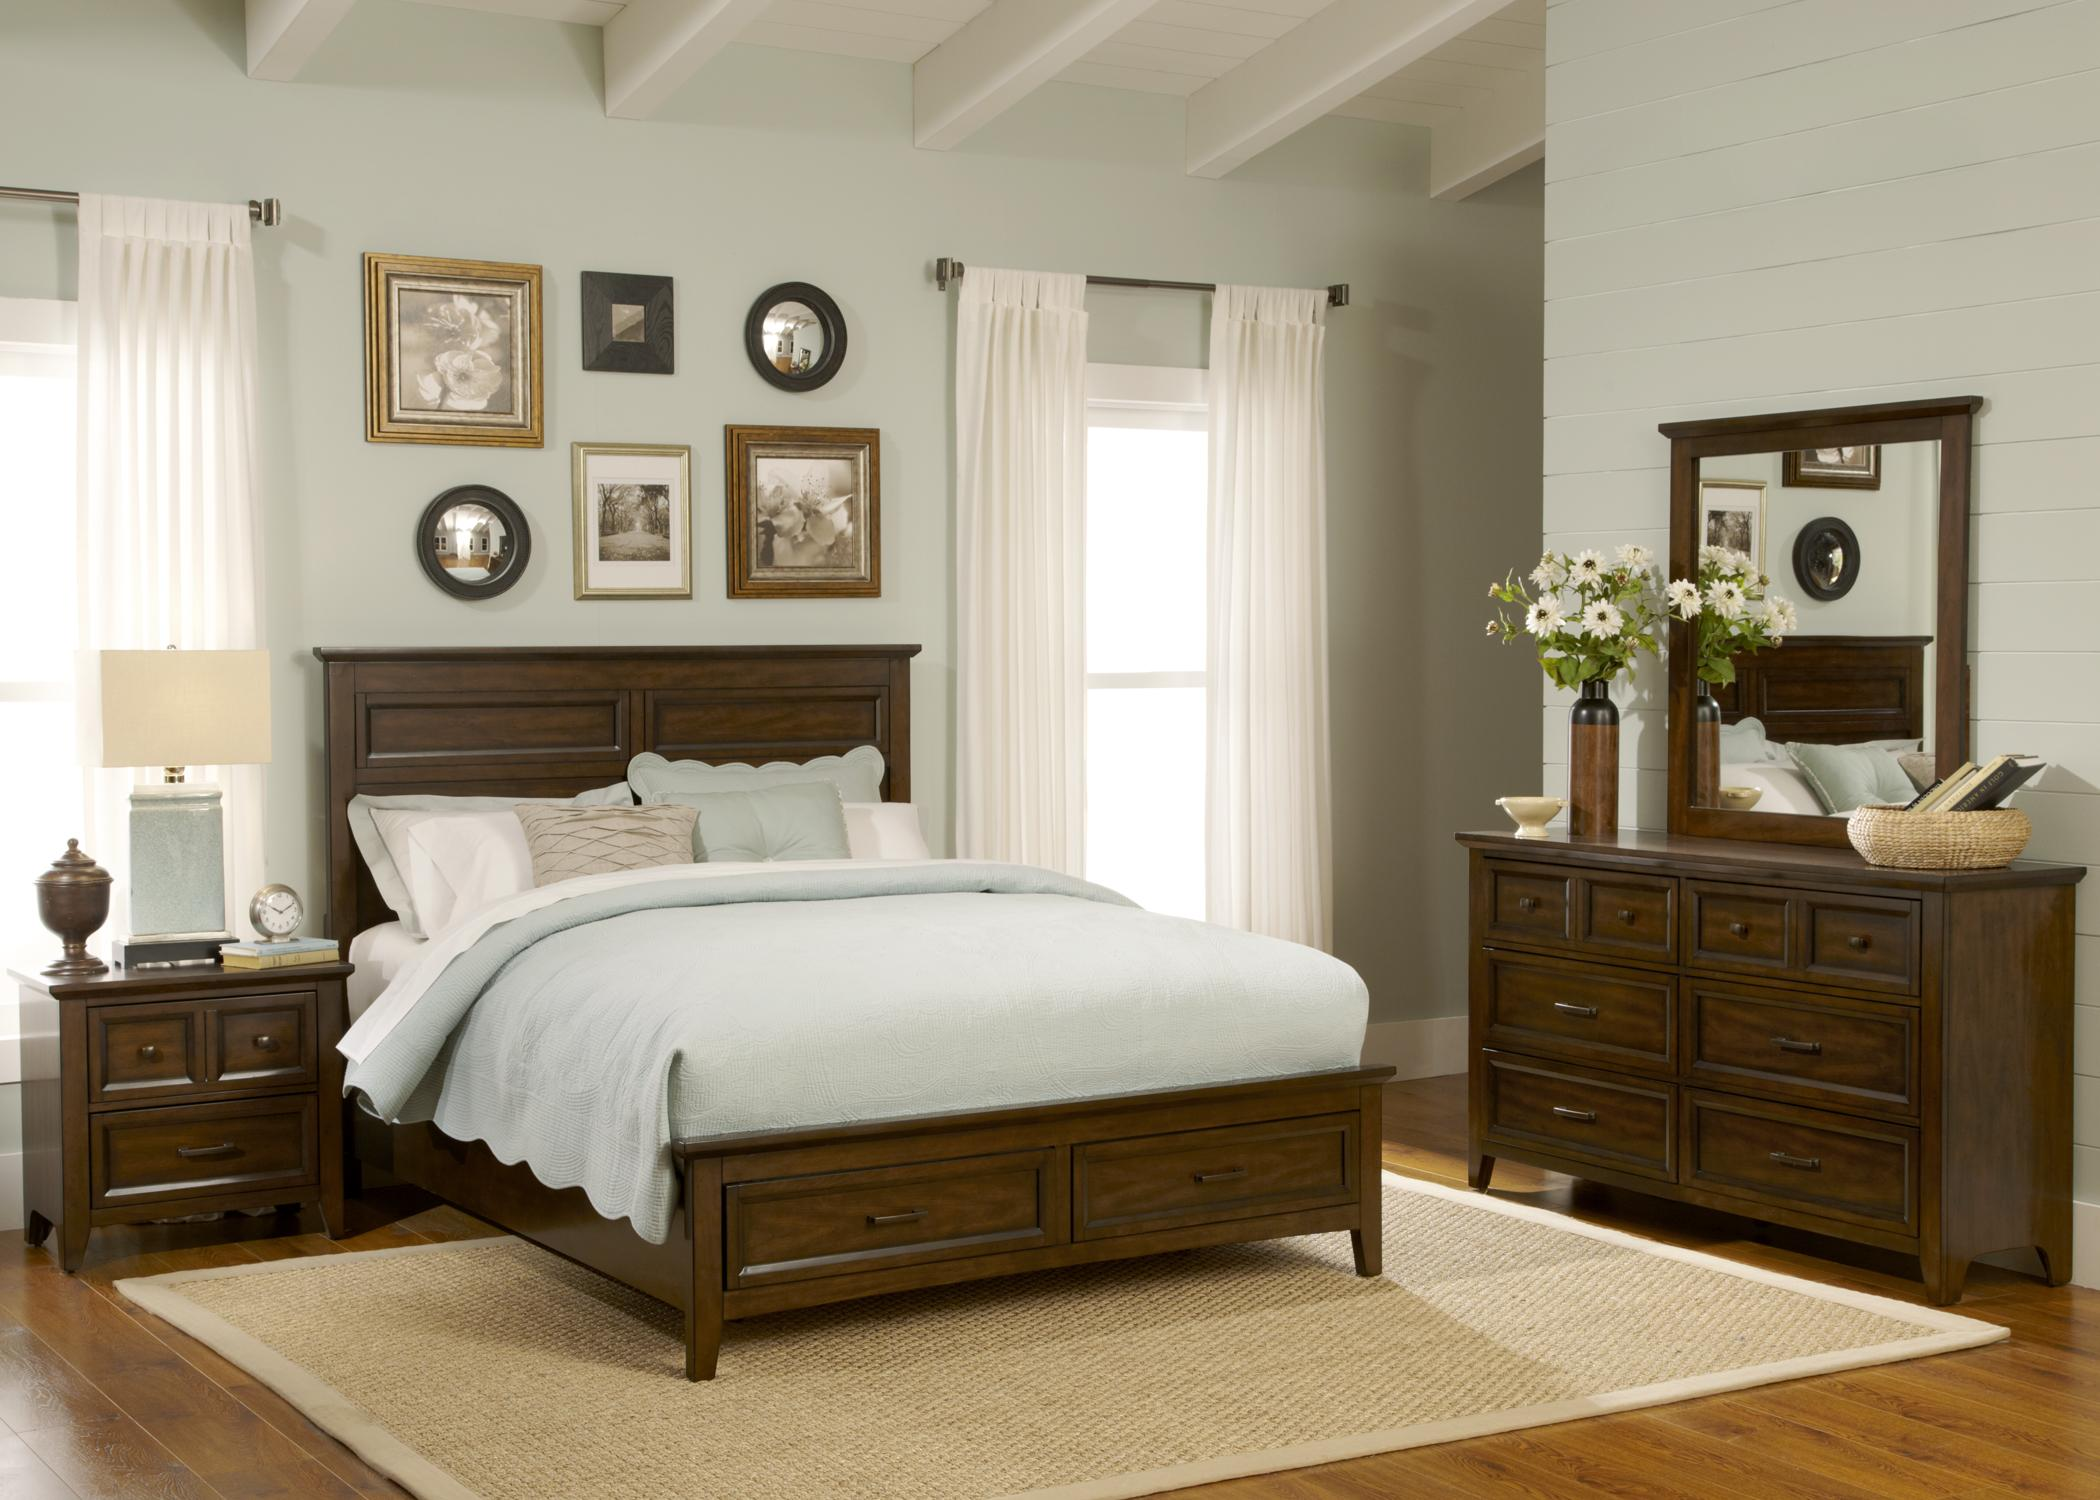 Liberty Furniture Laurel Creek Queen Bedroom Group 1 - Item Number: 461-BR-GP218